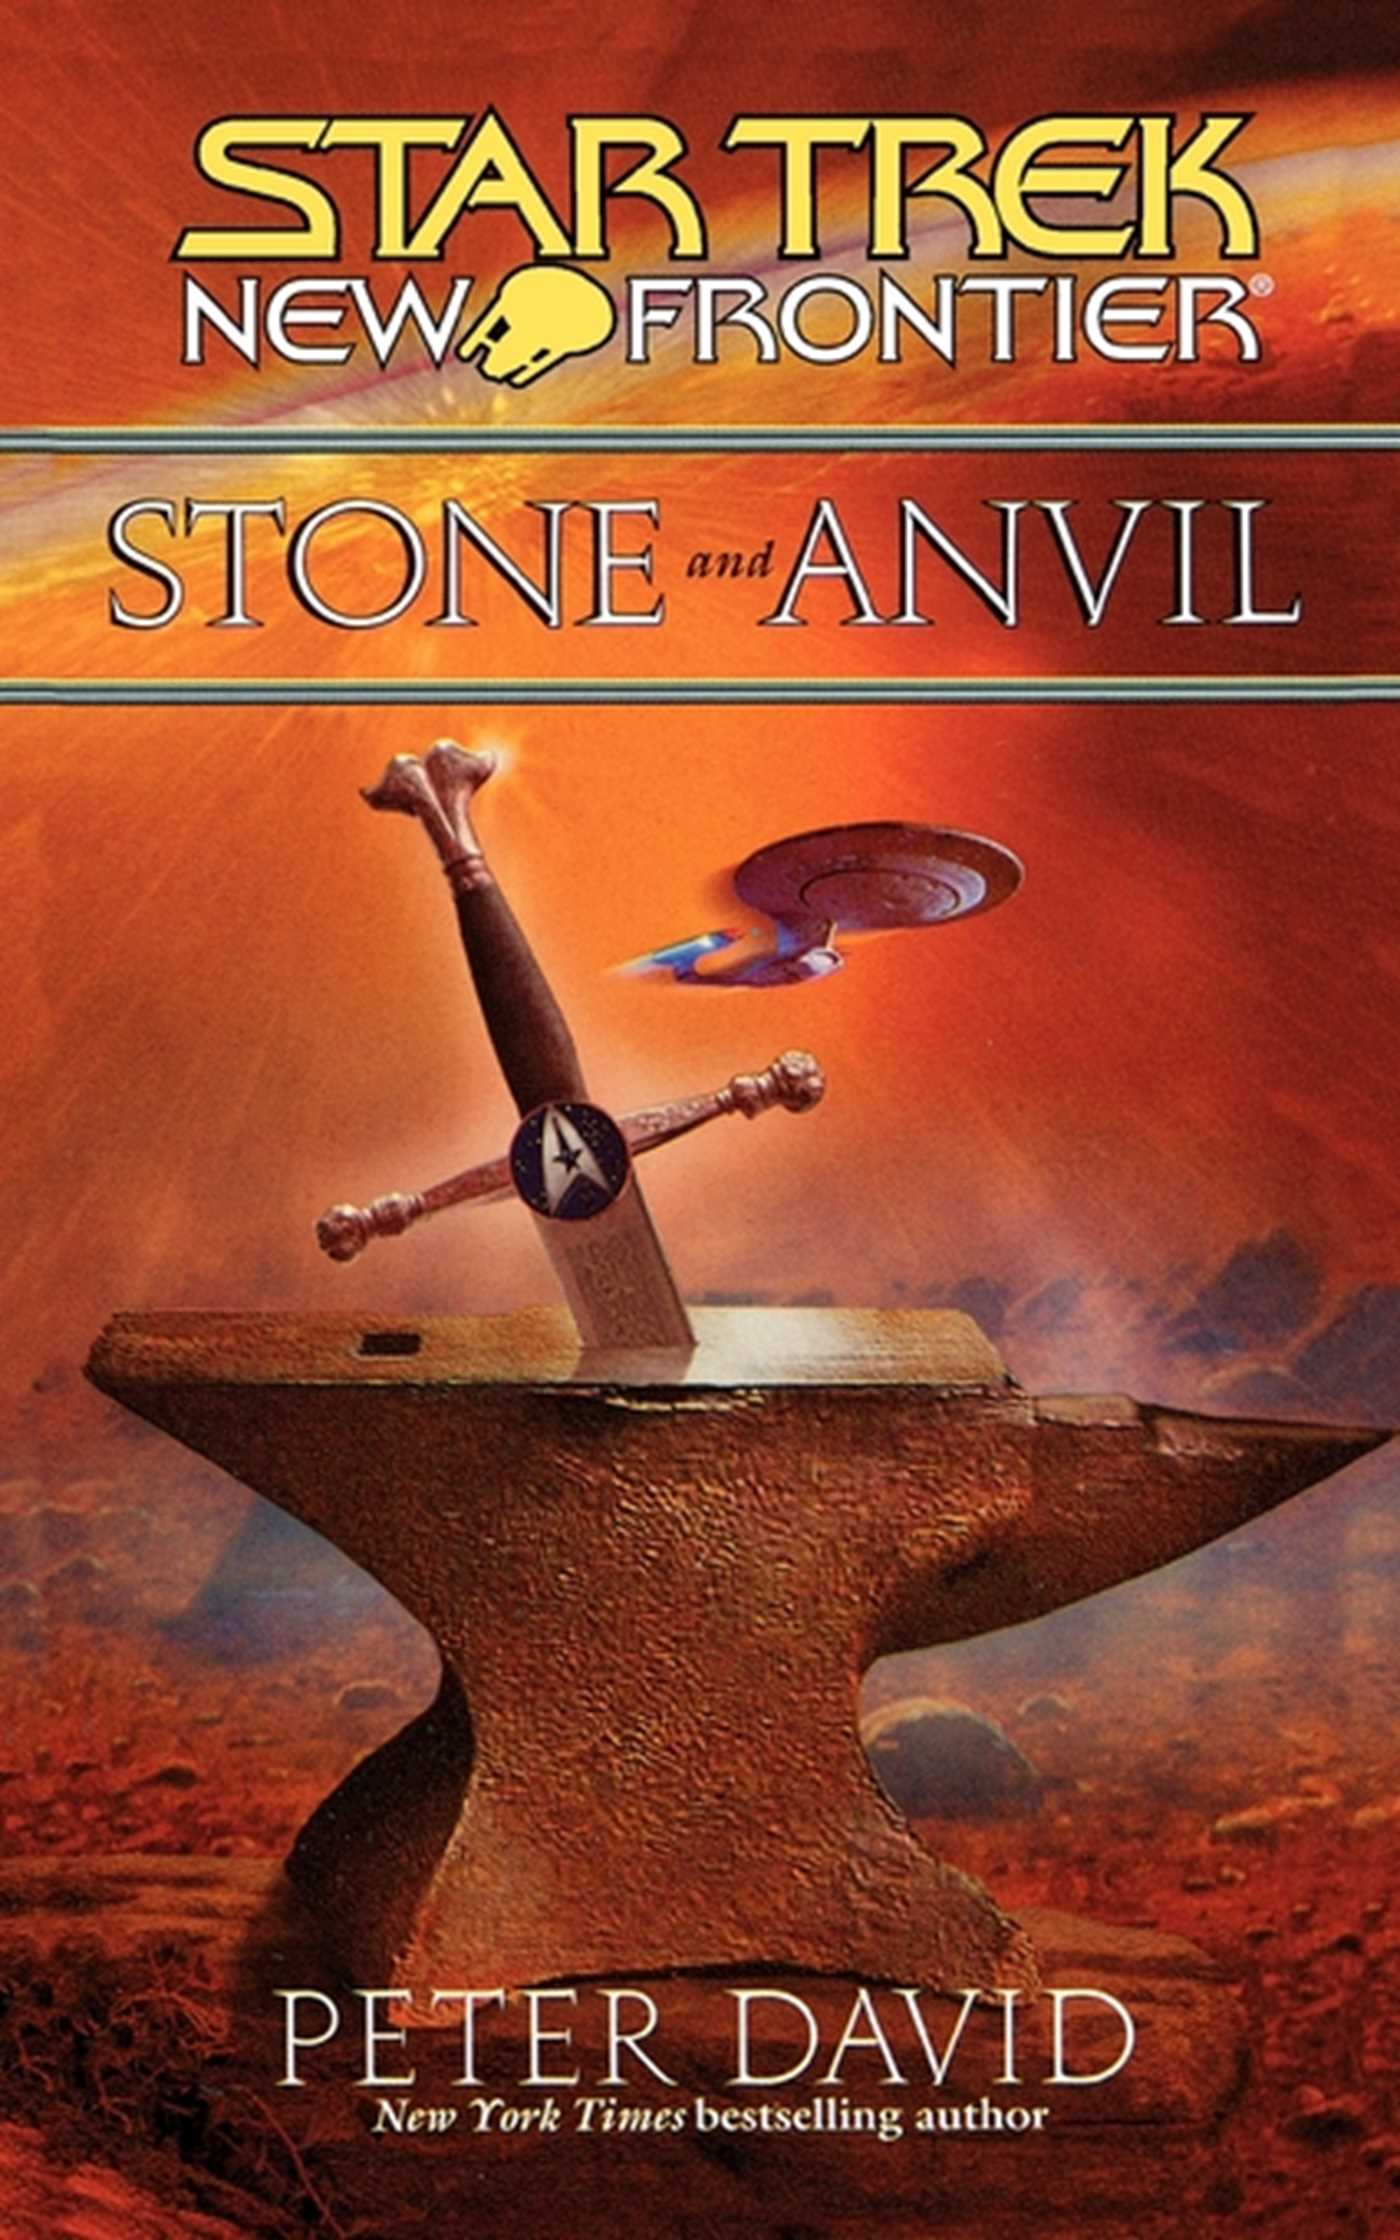 Star-trek-new-frontier-stone-and-anvil-9780743480178_hr